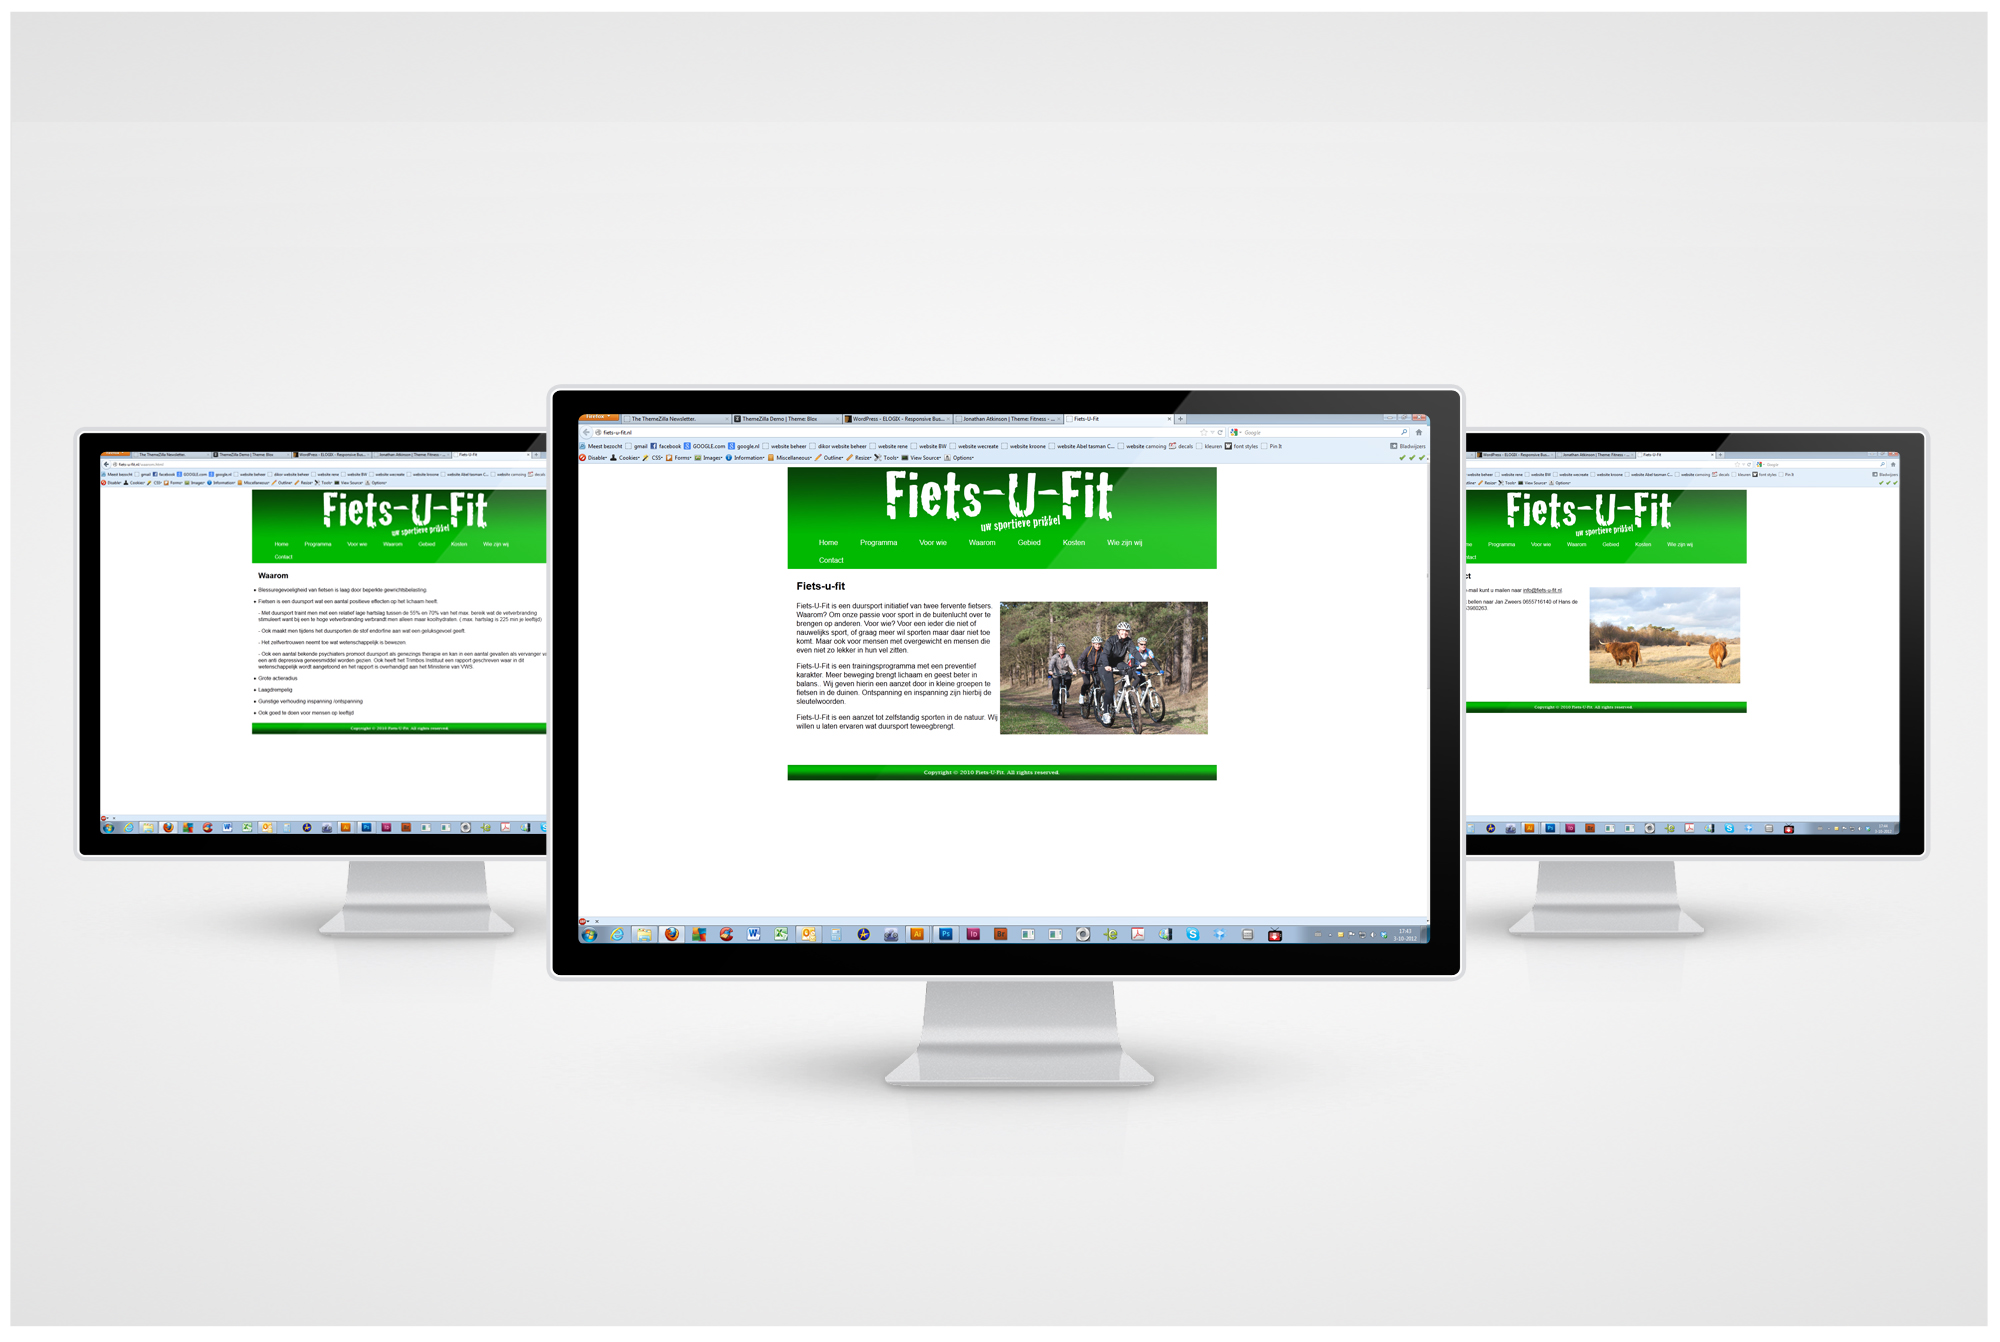 fiets-u-fit oude website